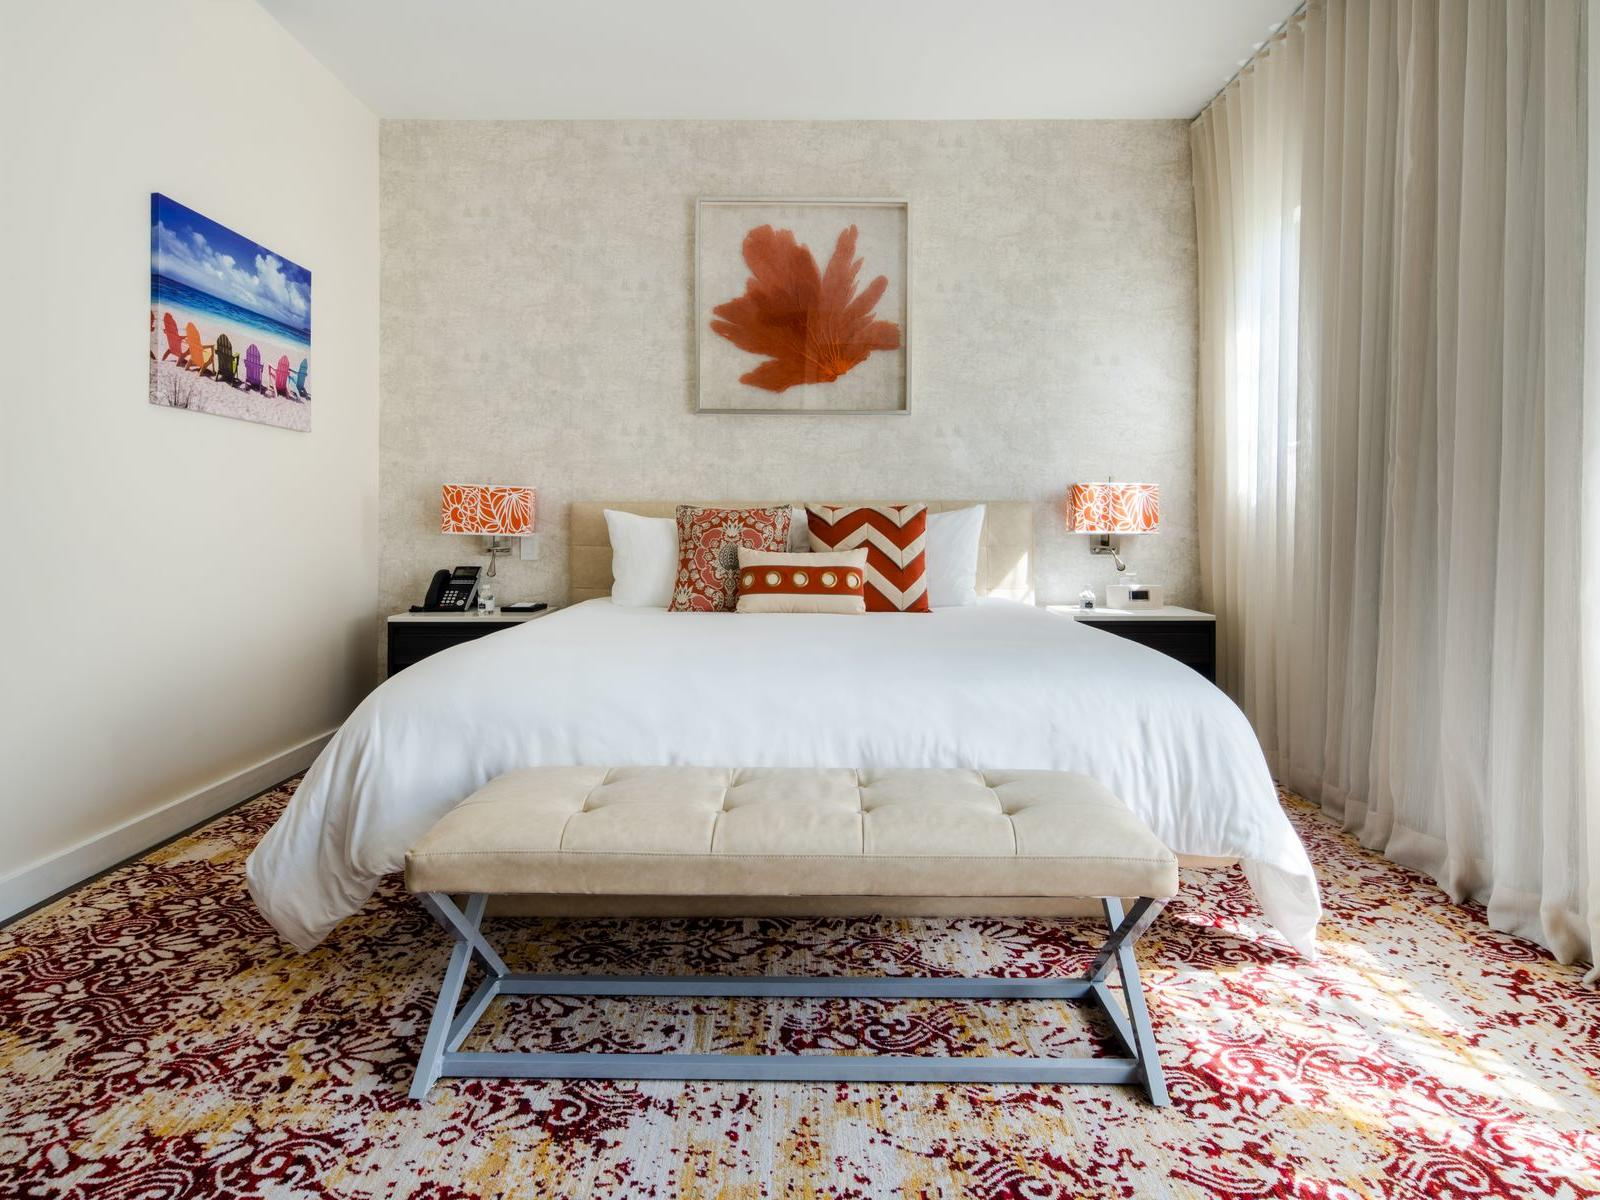 bed with white sheets in cozy room with carpet